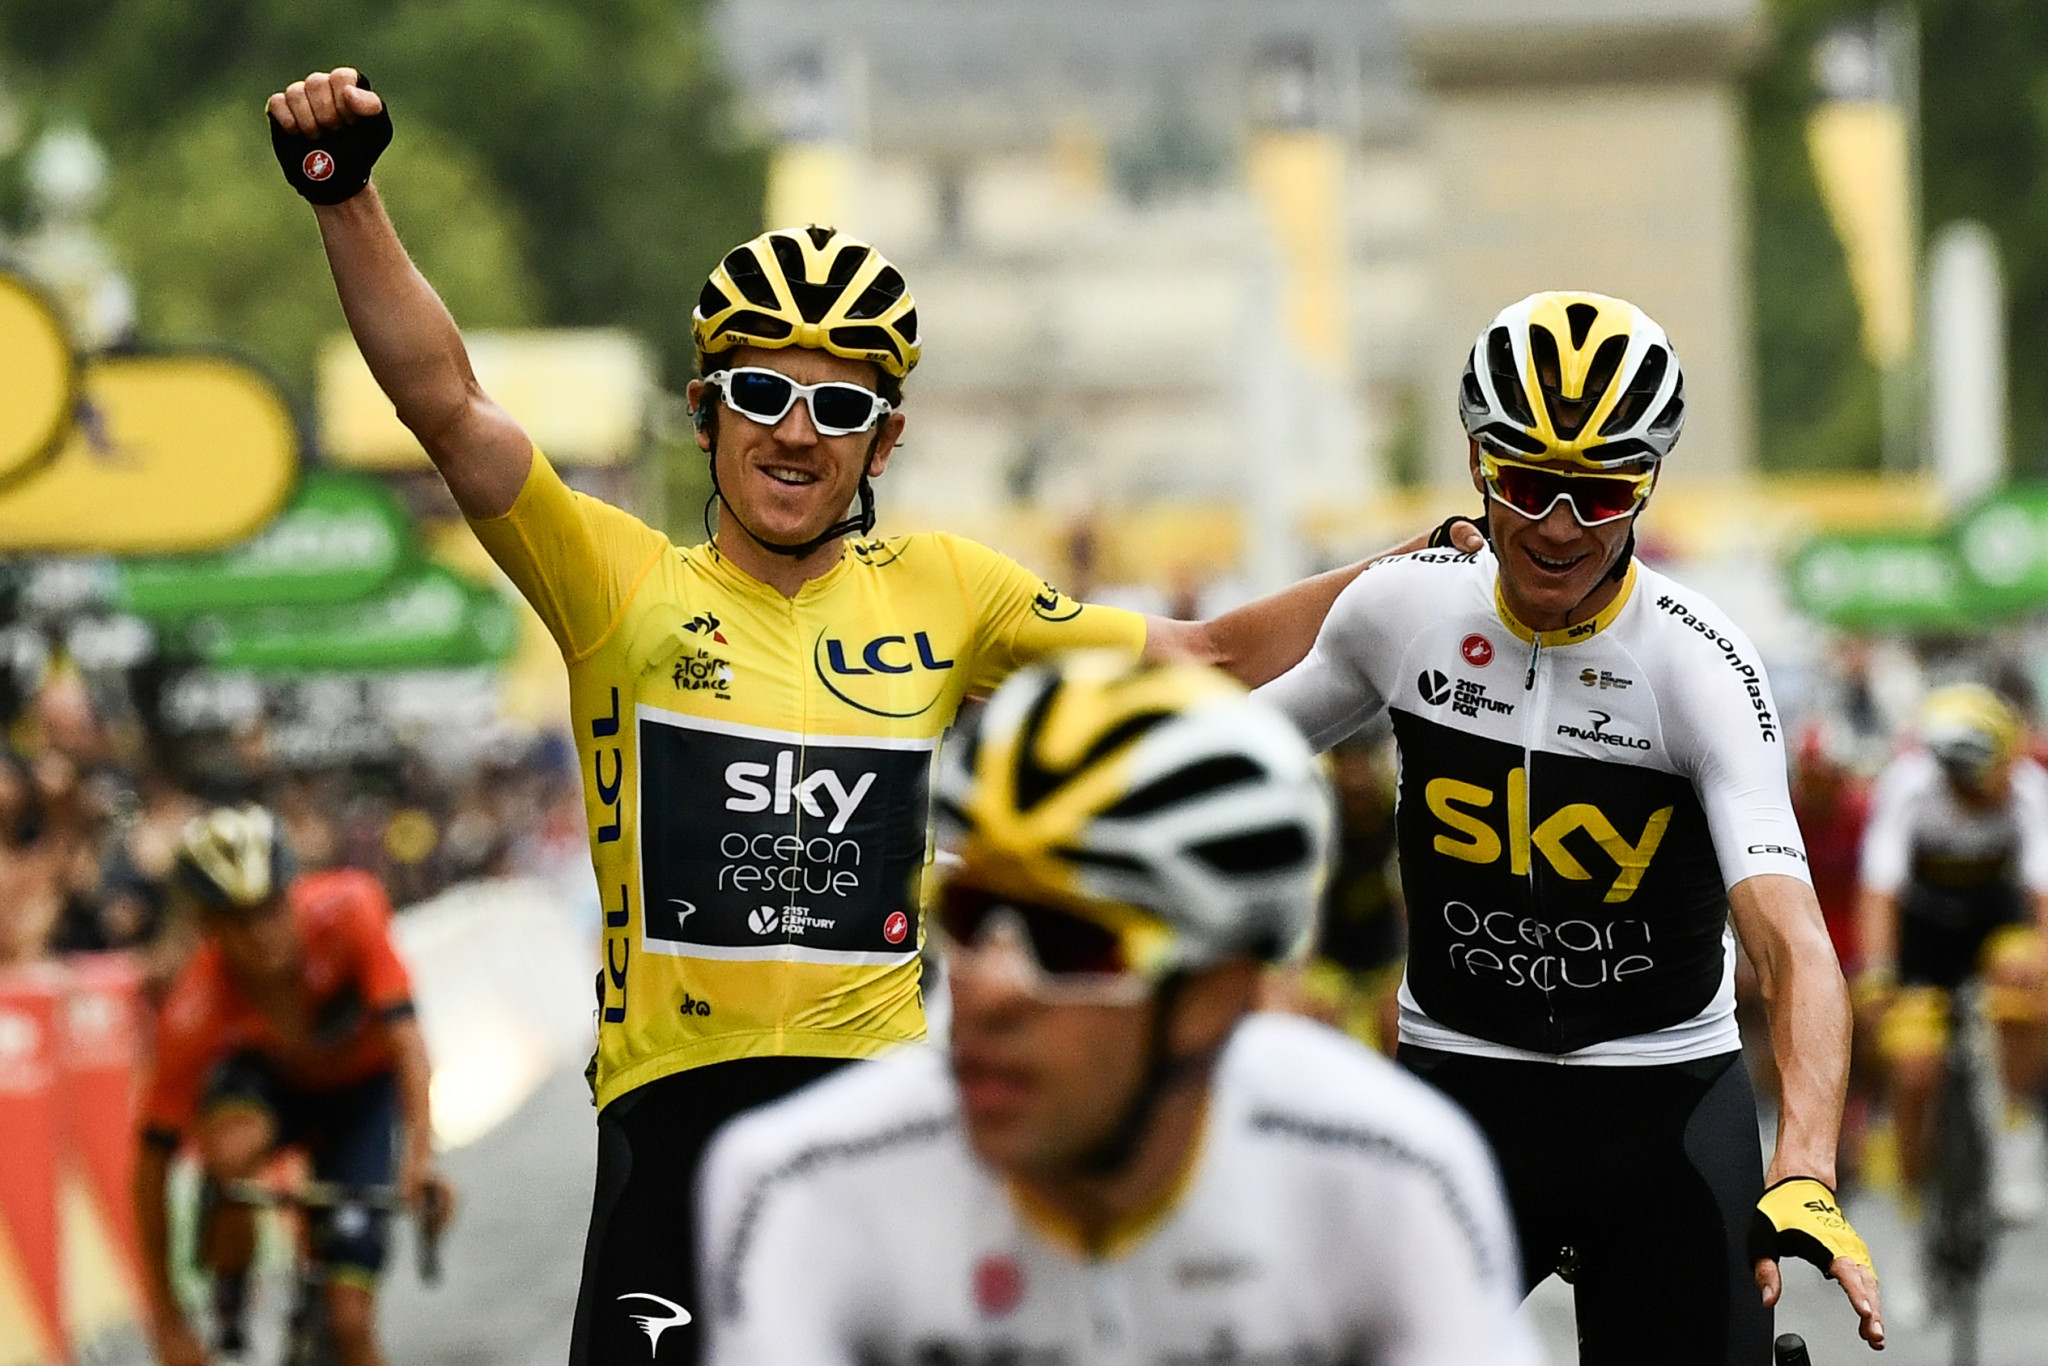 Geraint Thomas  has become the third British rider in seven years to win the Tour de France after finishing the final stage in Paris alongside teammate Chris Froome today ©Getty Images